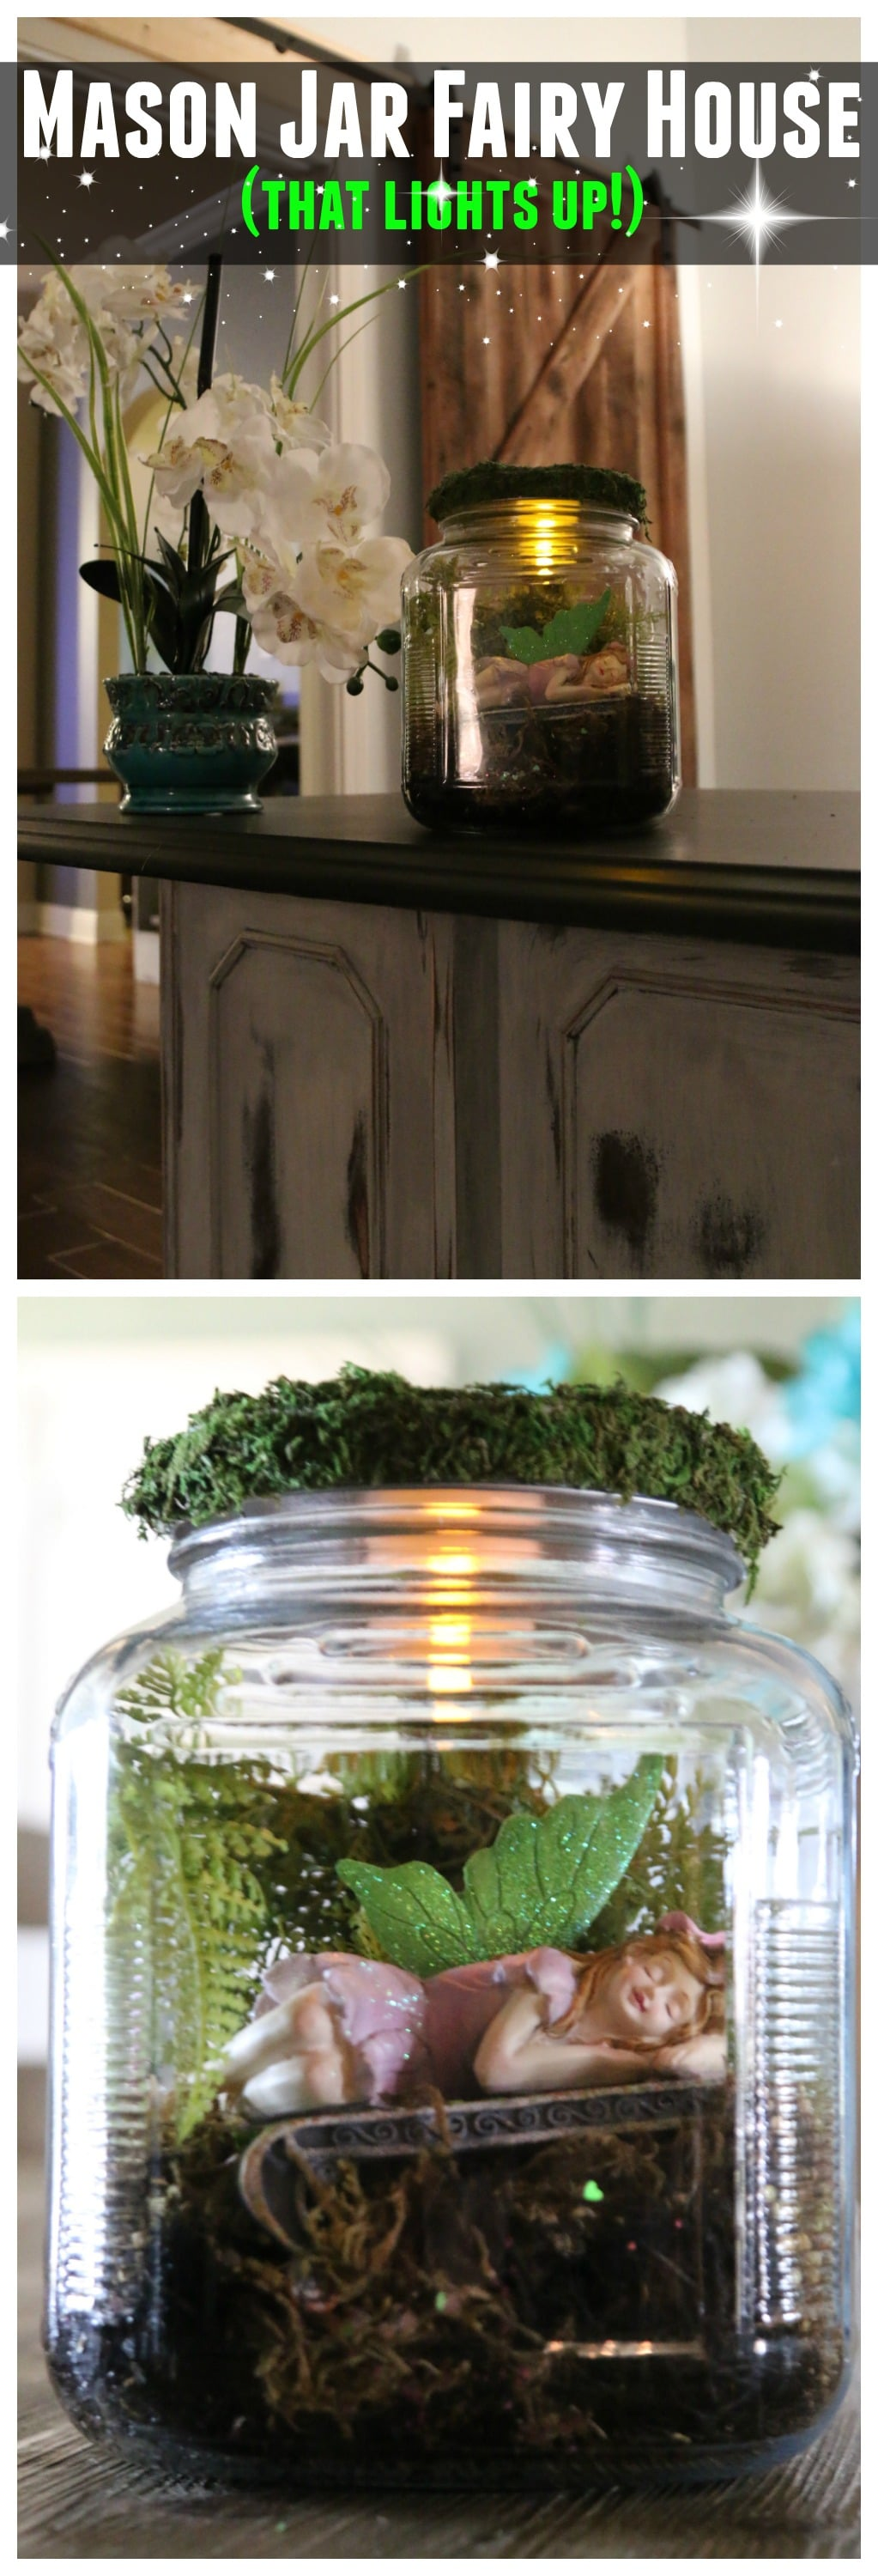 DIY Mason Jar Fairy house : adorable Fairy garden hidden away in a mason jar that can be used as a nightlight, decor, or put in the garden (and safe from rain!) , learn how to adopt a fairy for your garden or desk today